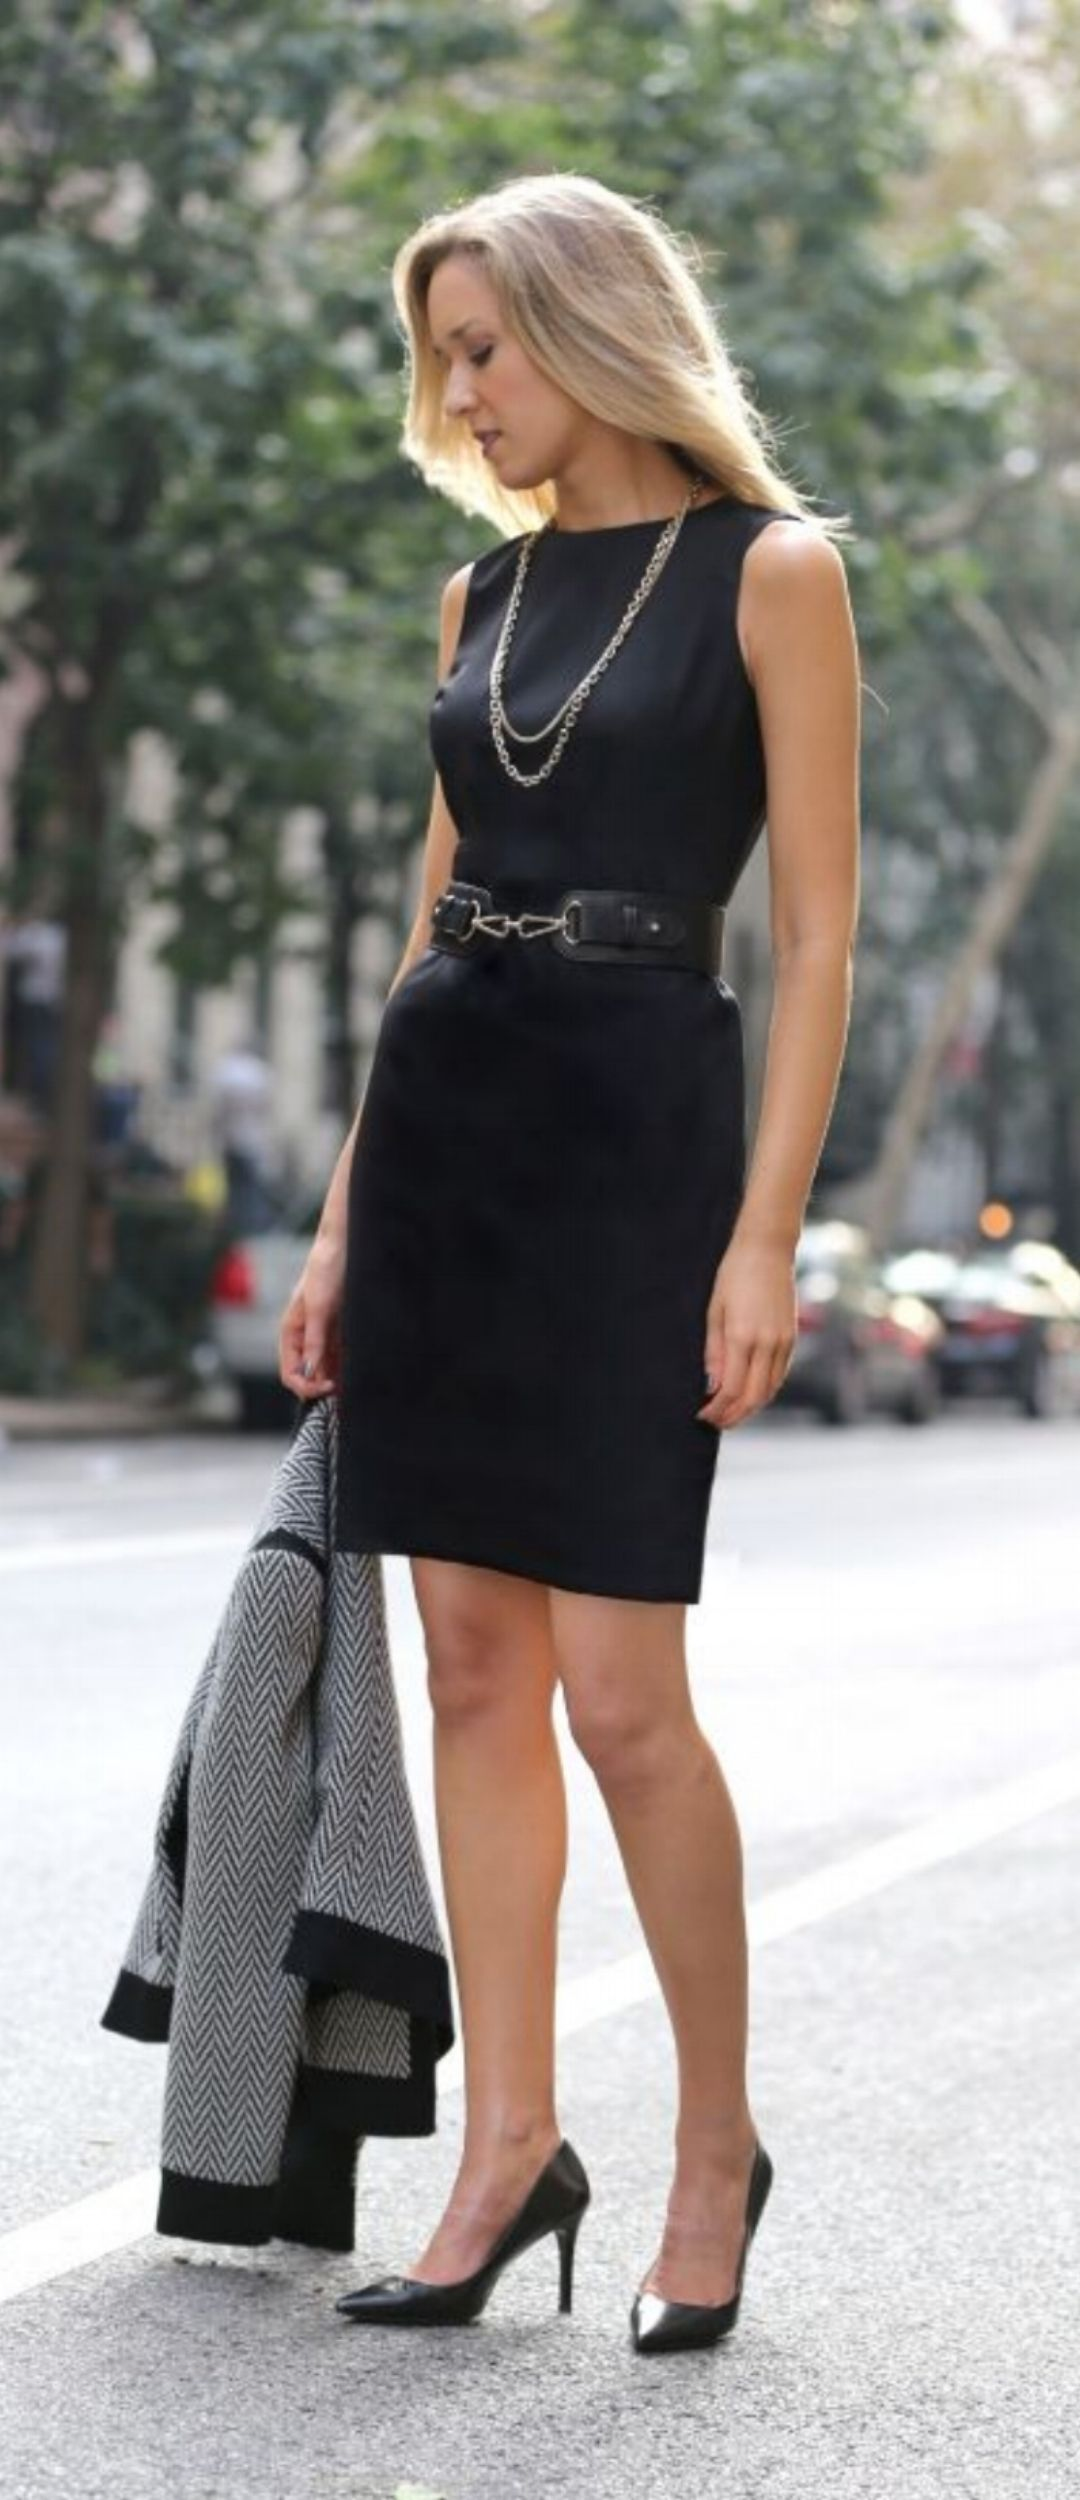 How to stylish dress chic fotos